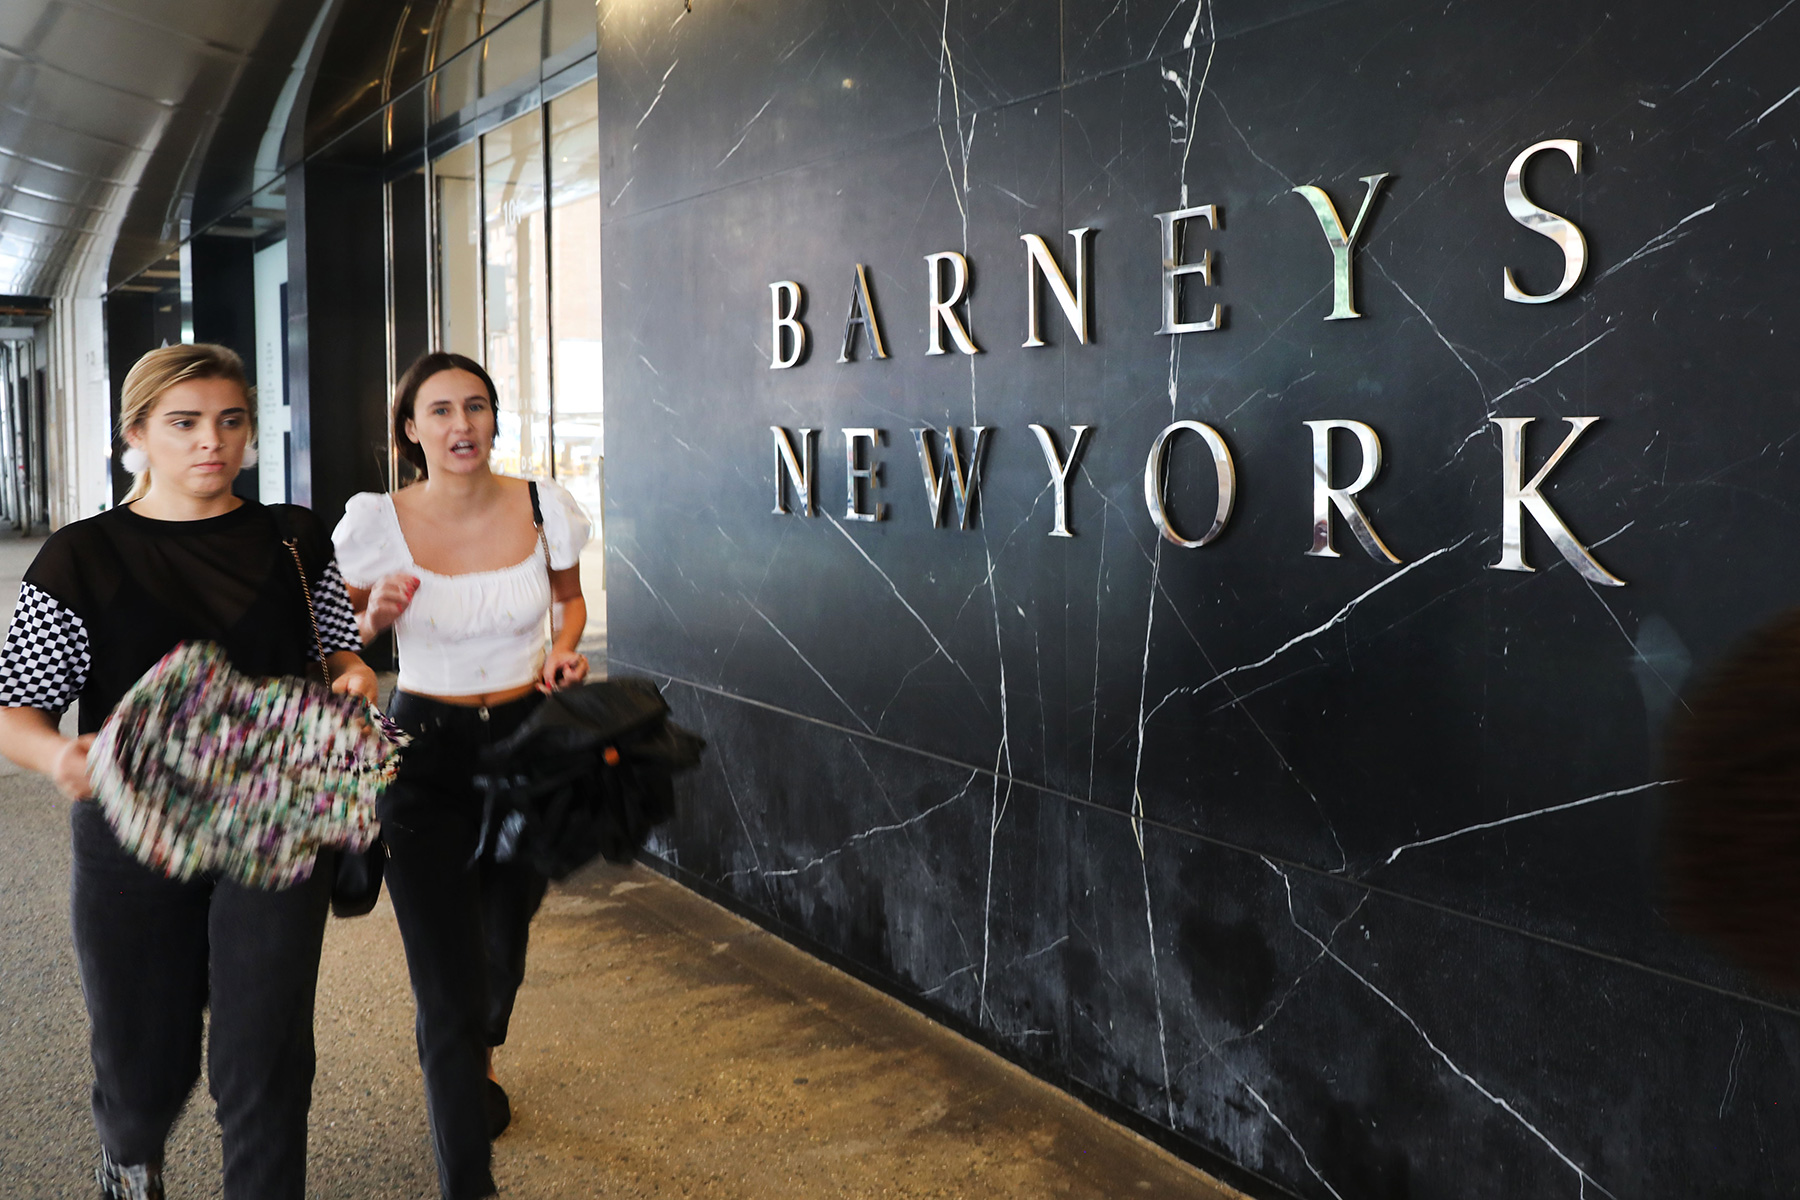 Regency Centers said it has been affected by elevated retailer bankruptcies, including Barneys New York. (Getty Images)